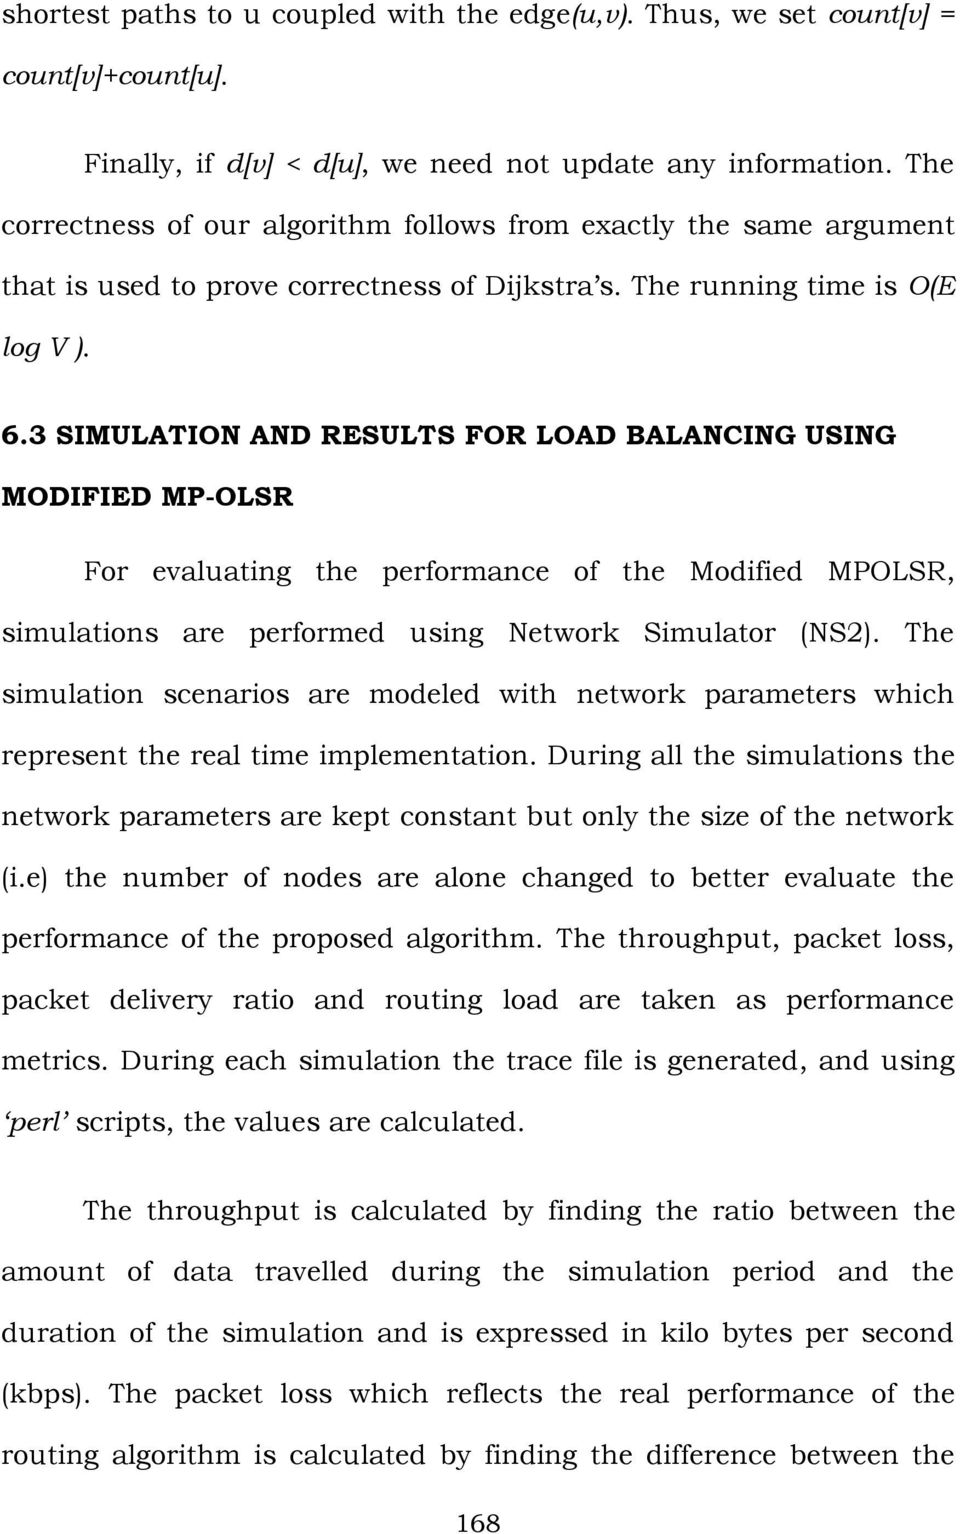 3 SIMULATION AND RESULTS FOR LOAD BALANCING USING MODIFIED MP-OLSR For evaluating the performance of the Modified MPOLSR, simulations are performed using Network Simulator (NS2).